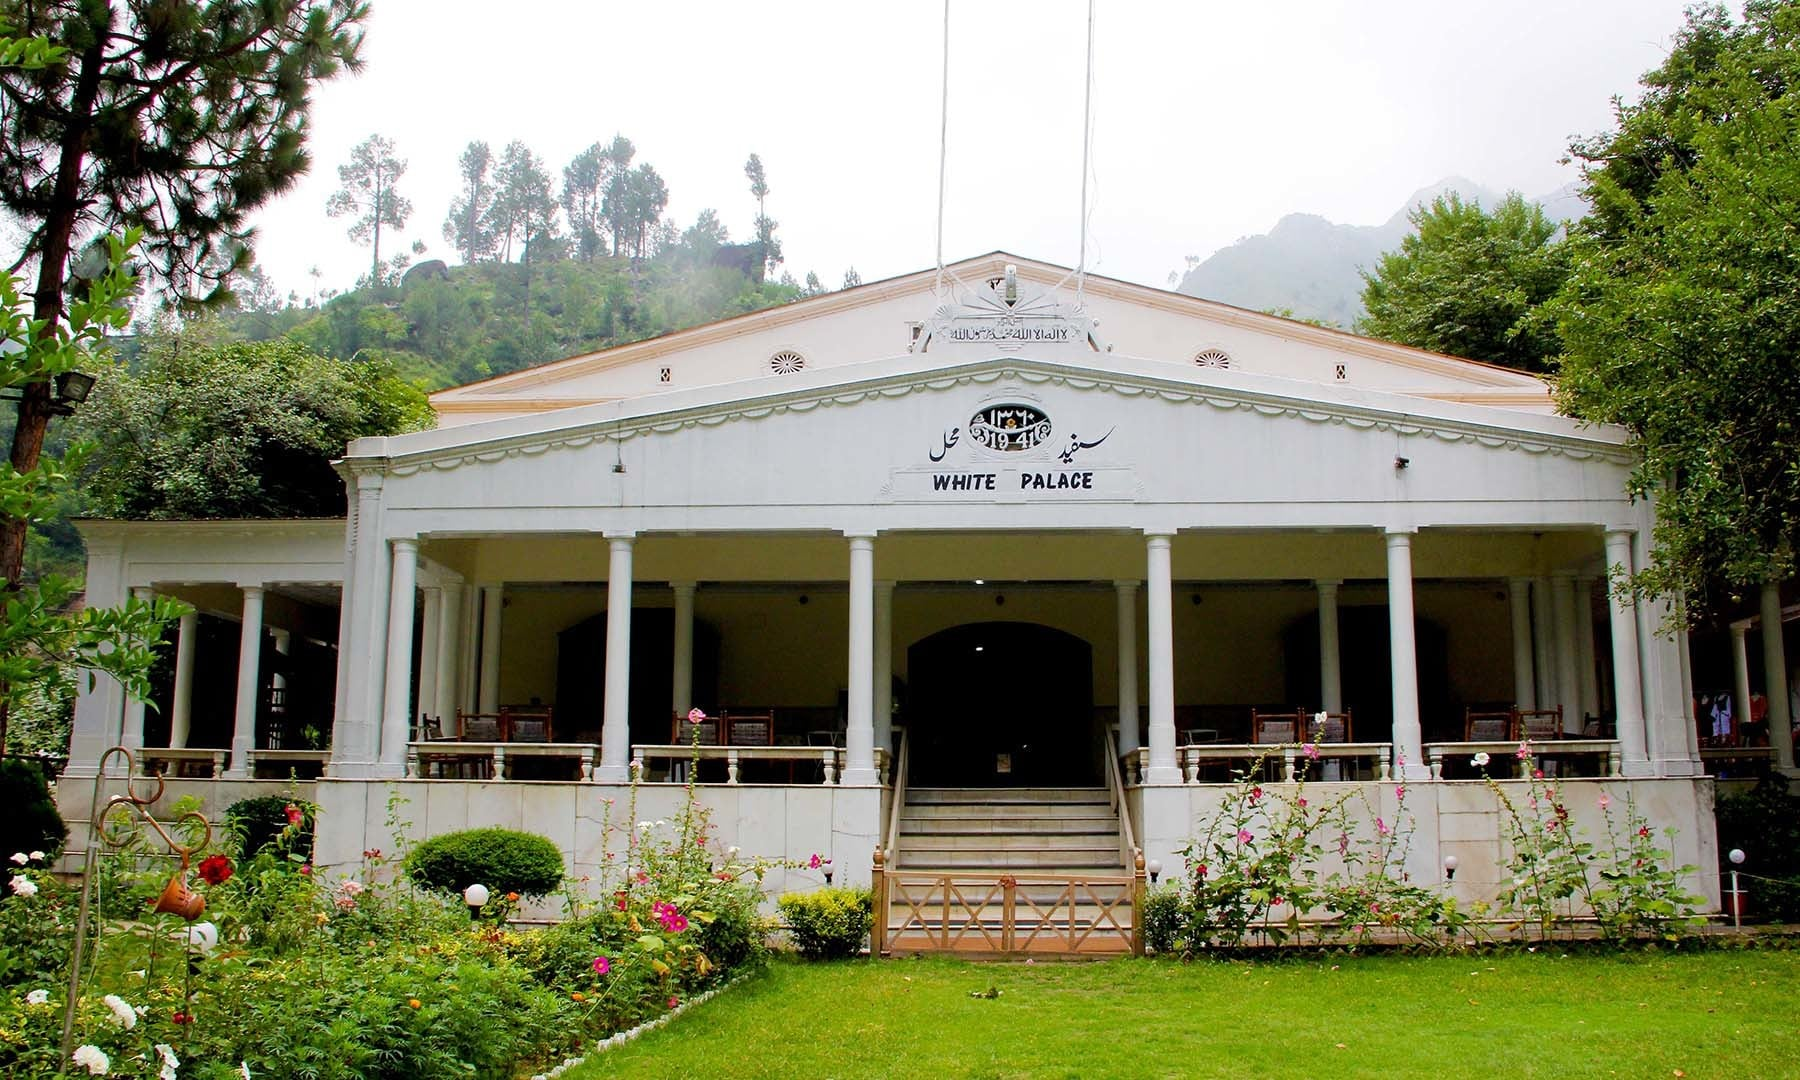 White Palace of SWAT